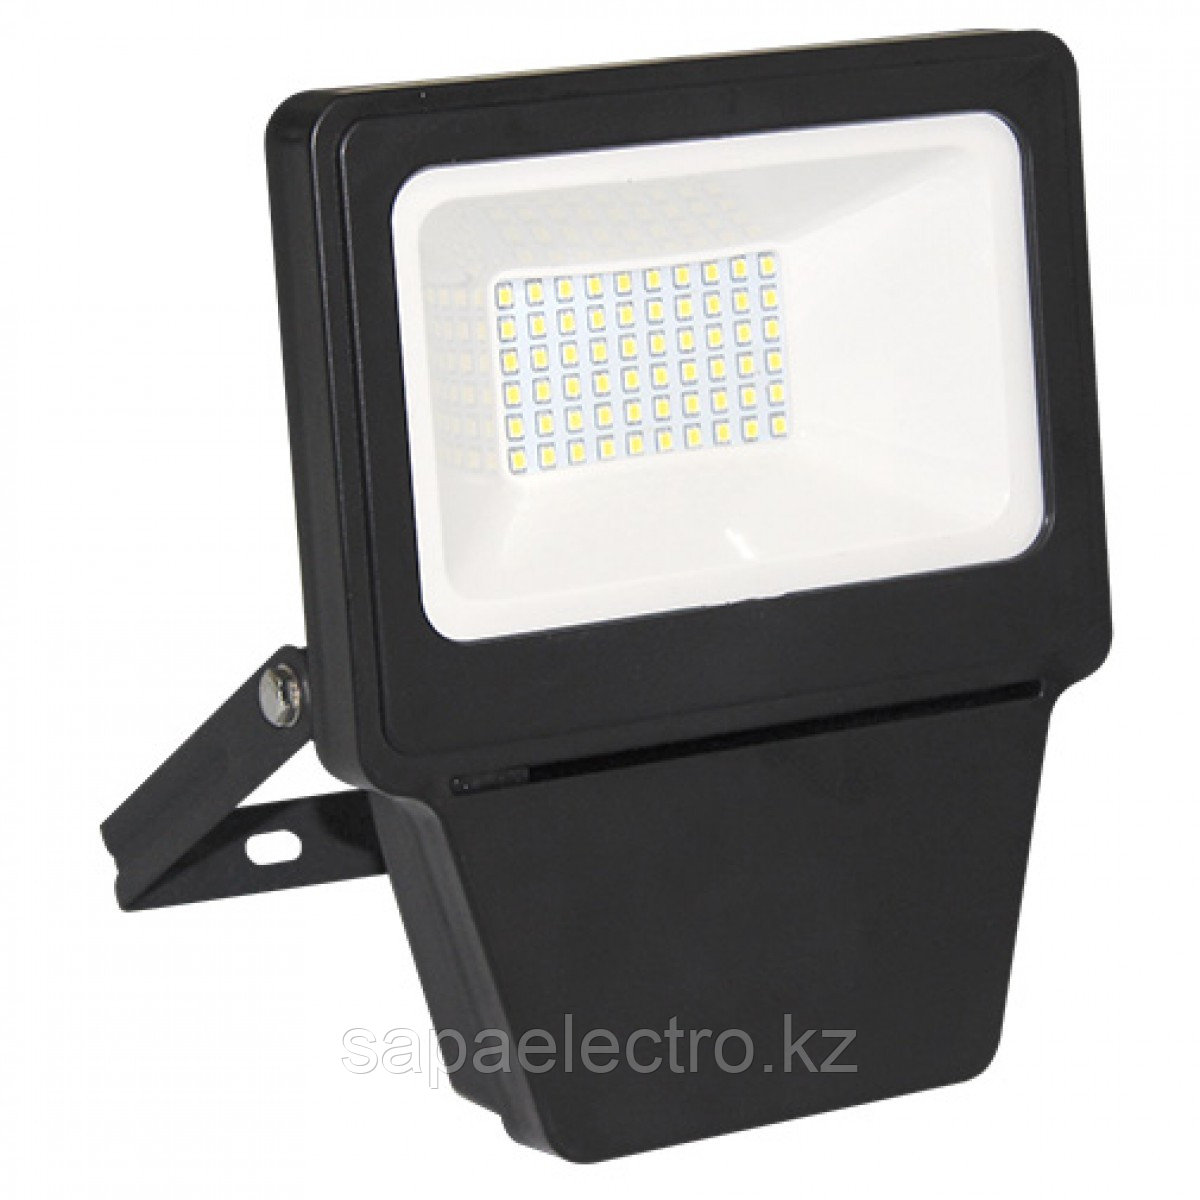 Прожектор LED SMD 30W BLACK 6000K  (TS)24шт